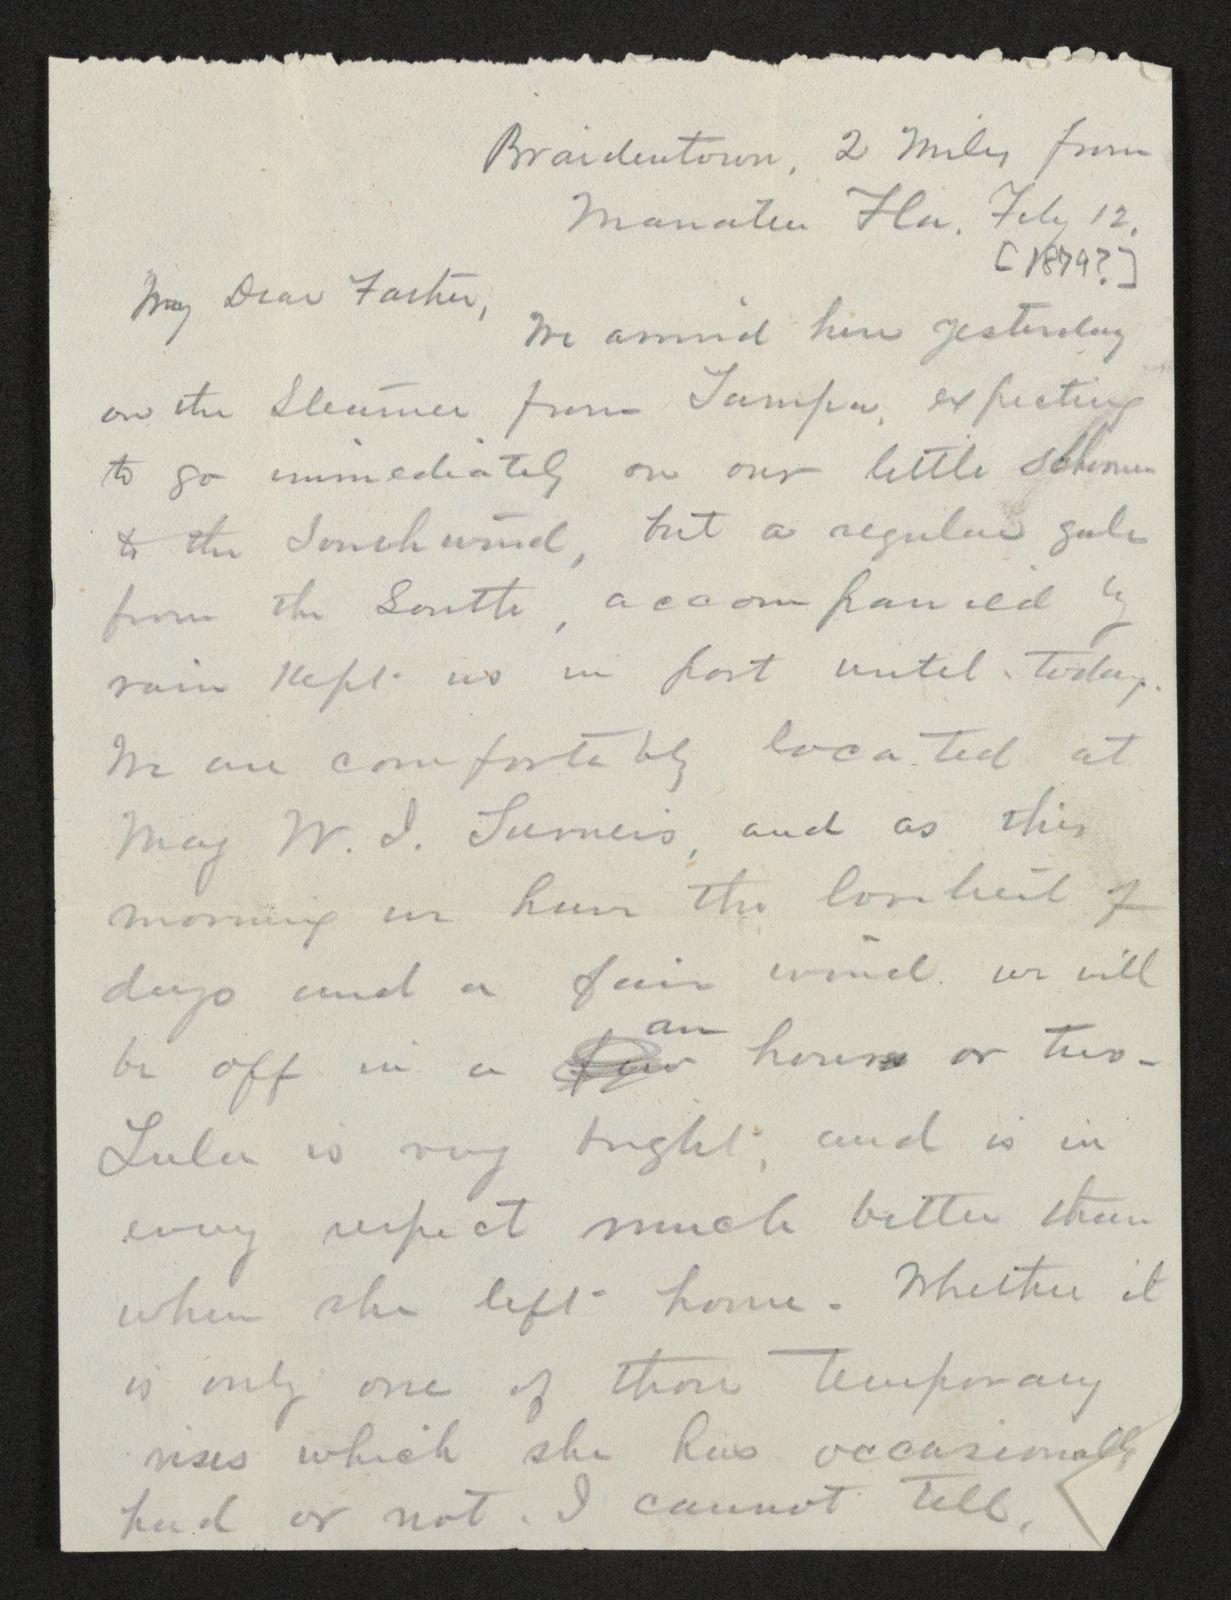 Lewis H. Machen Family Papers: Gresham Family Correspondence, 1834-1925; 1878-1879, 1870s